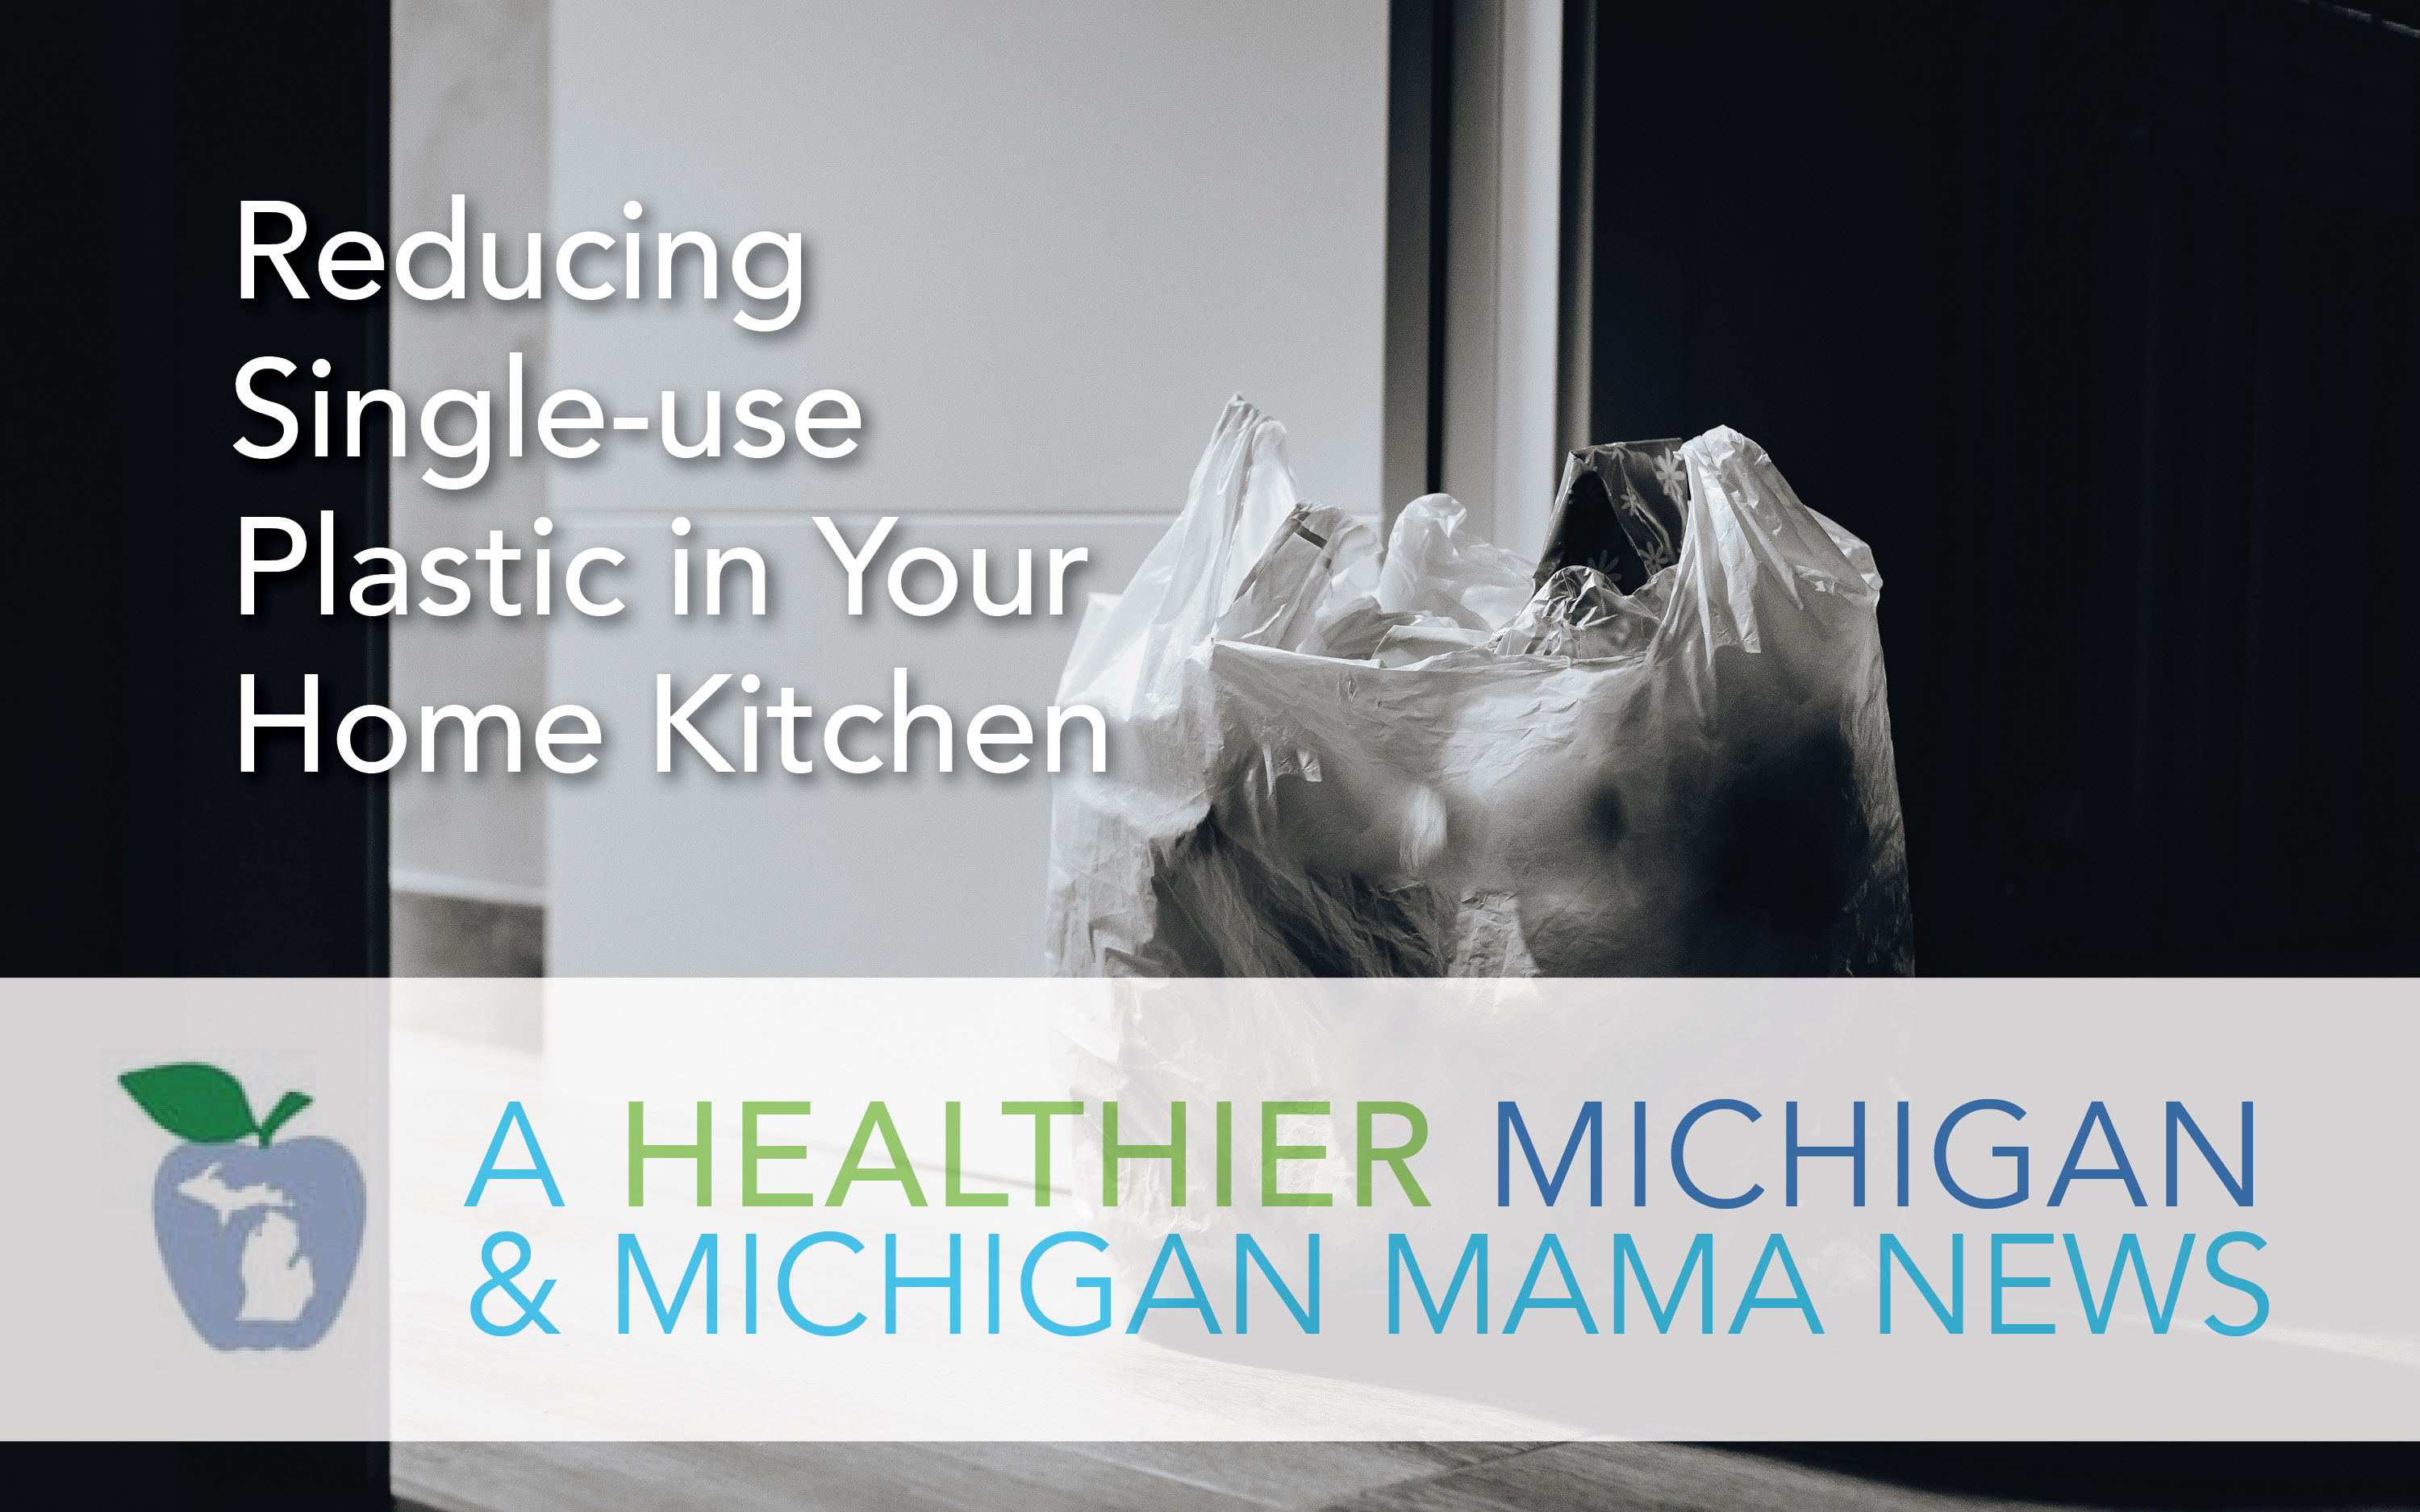 Reducing Single-Use Plastic in Your Home Kitchen